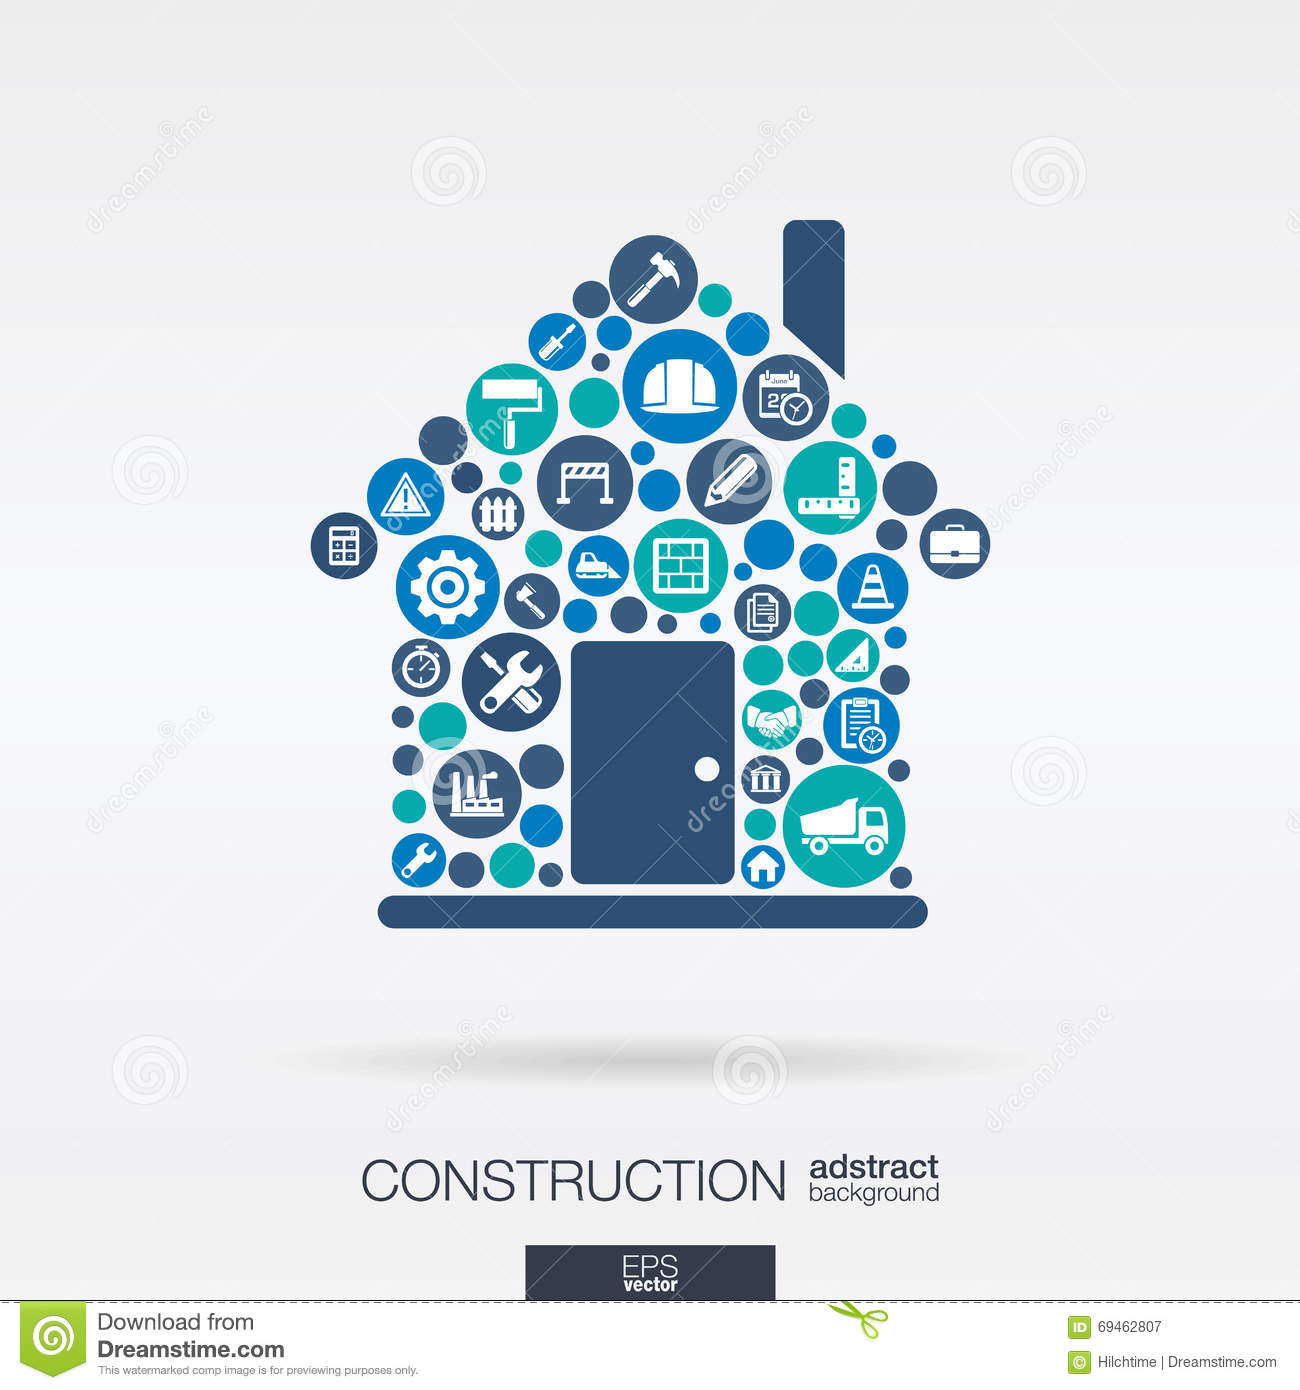 Flat Icons In A House Shape Construction Build Industry Architectural Engineering Concept